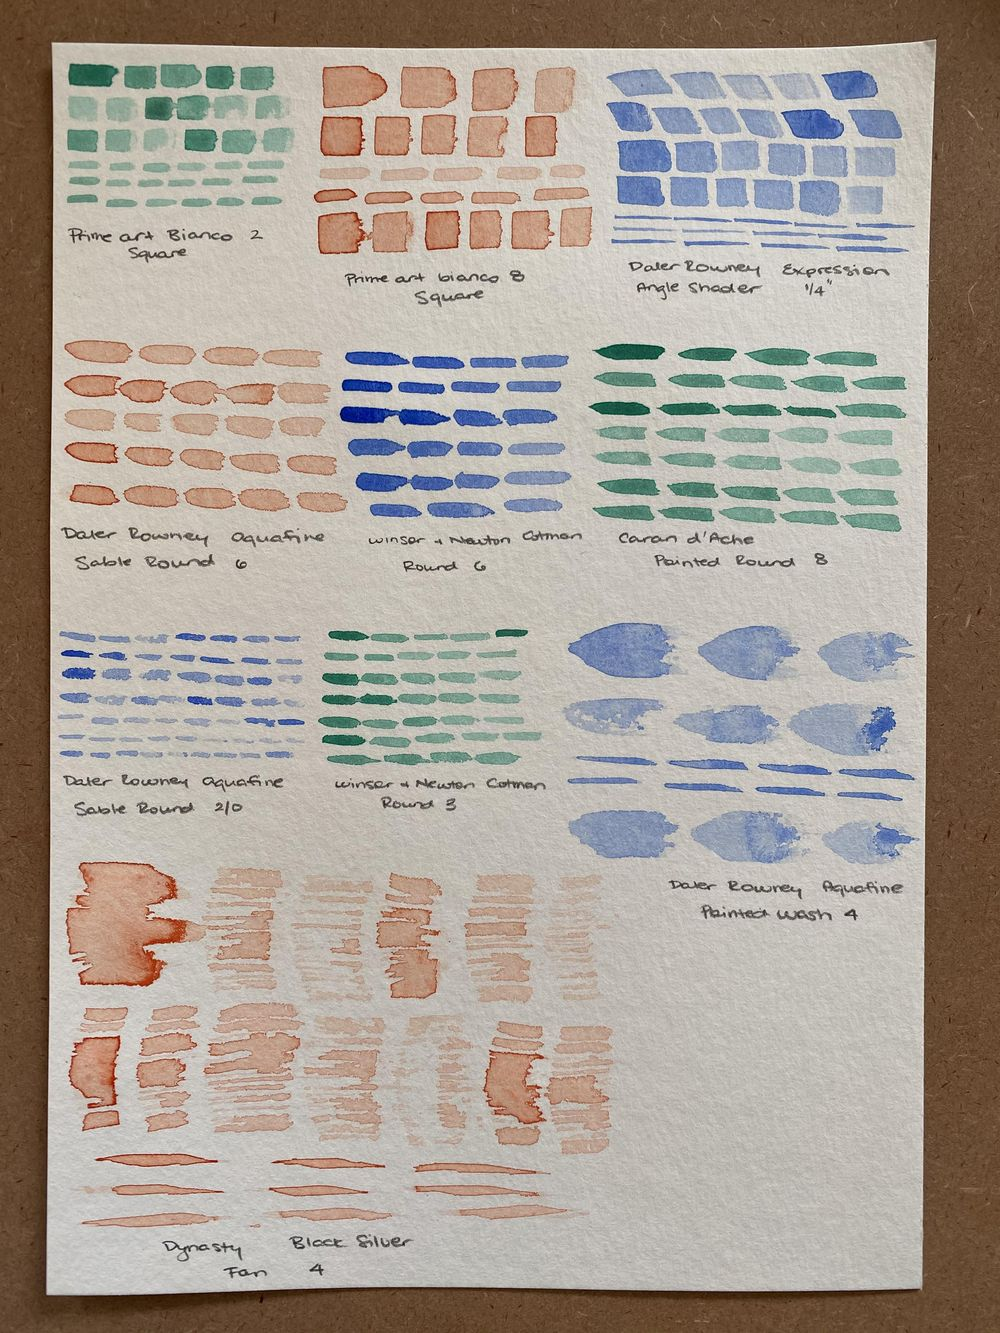 Watercolor workout exercises - image 2 - student project